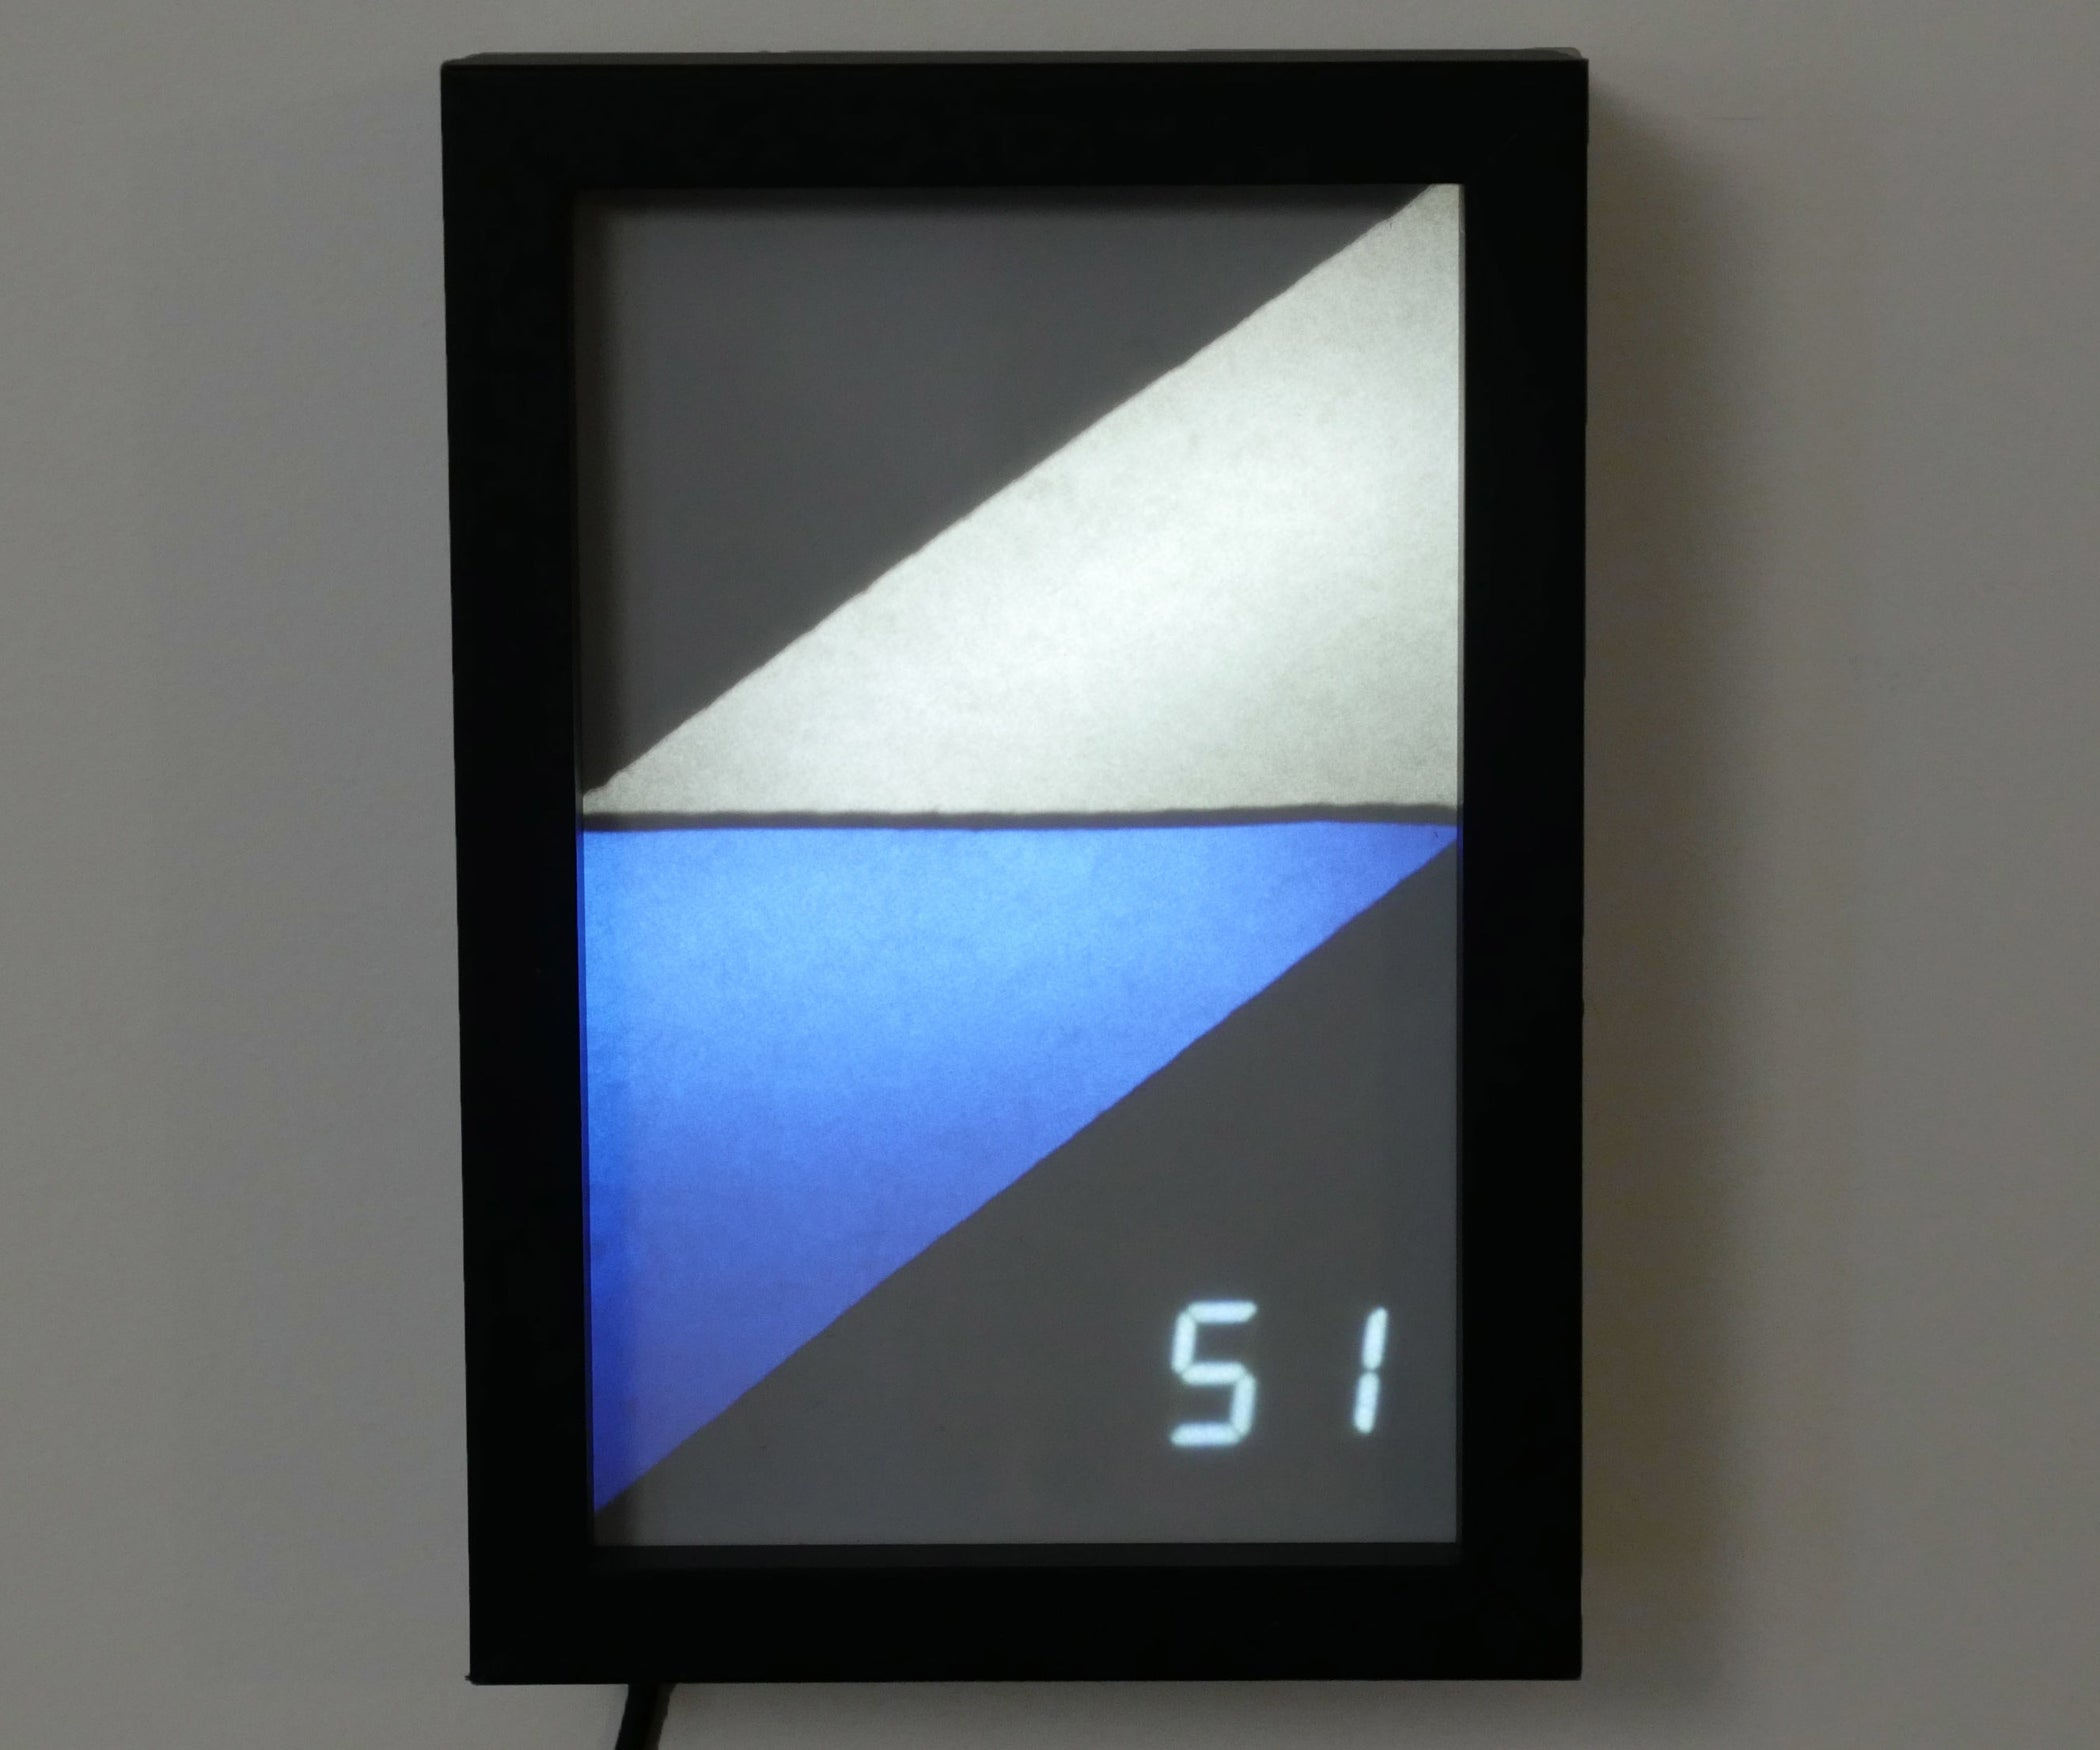 WiFi Weather Display With ESP8266: 7 Steps (with Pictures)